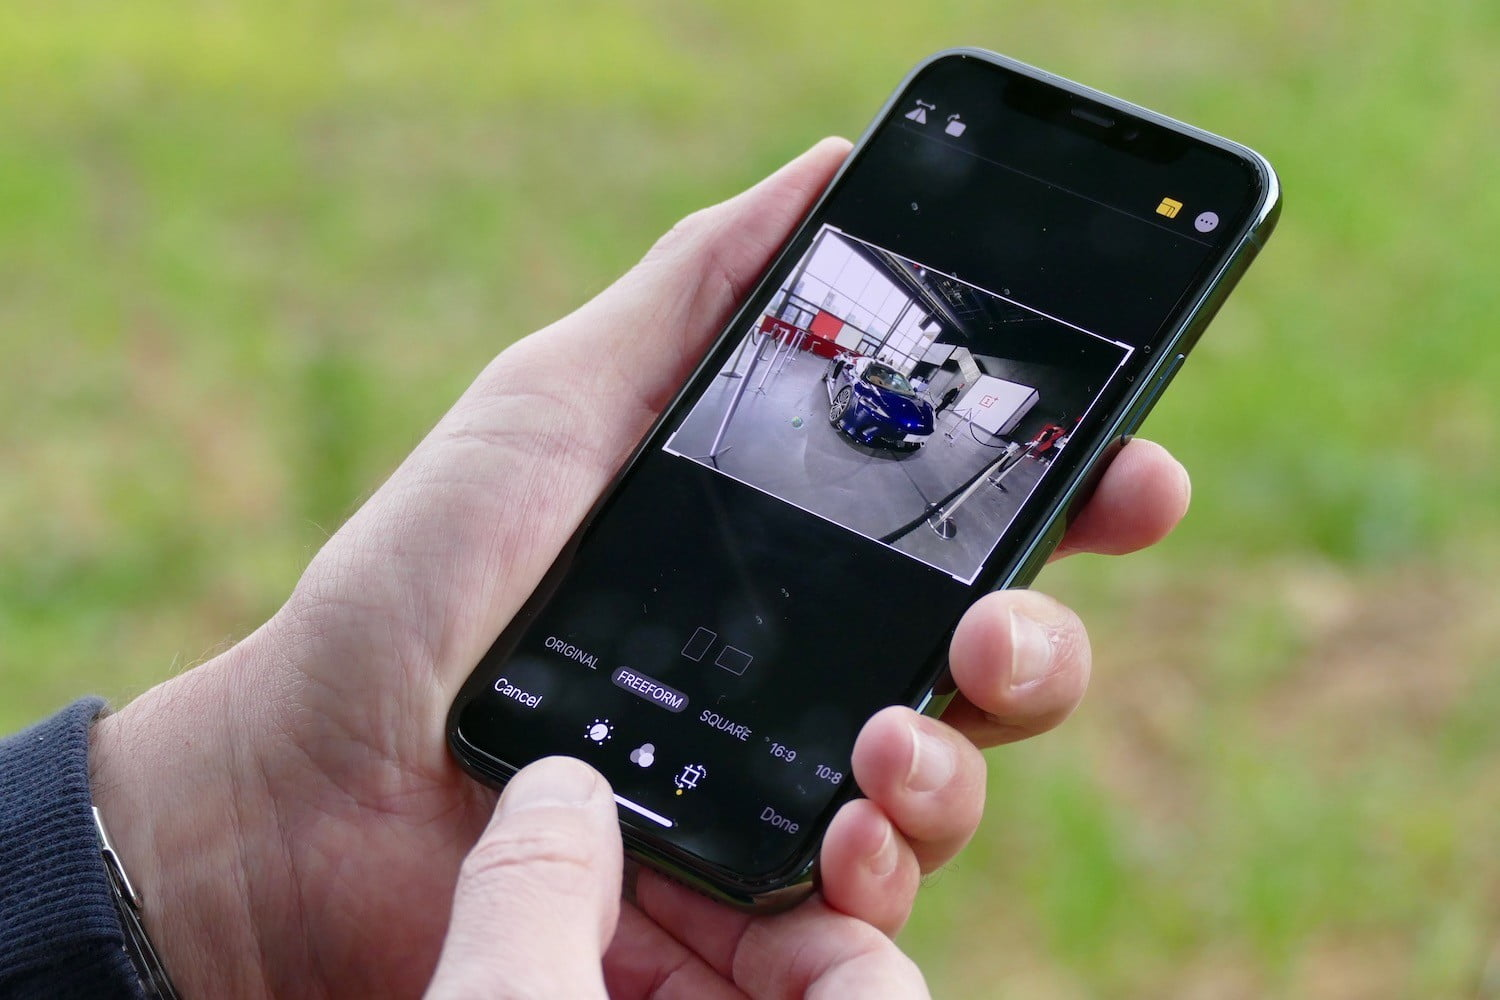 How to crop a video on an iPhone